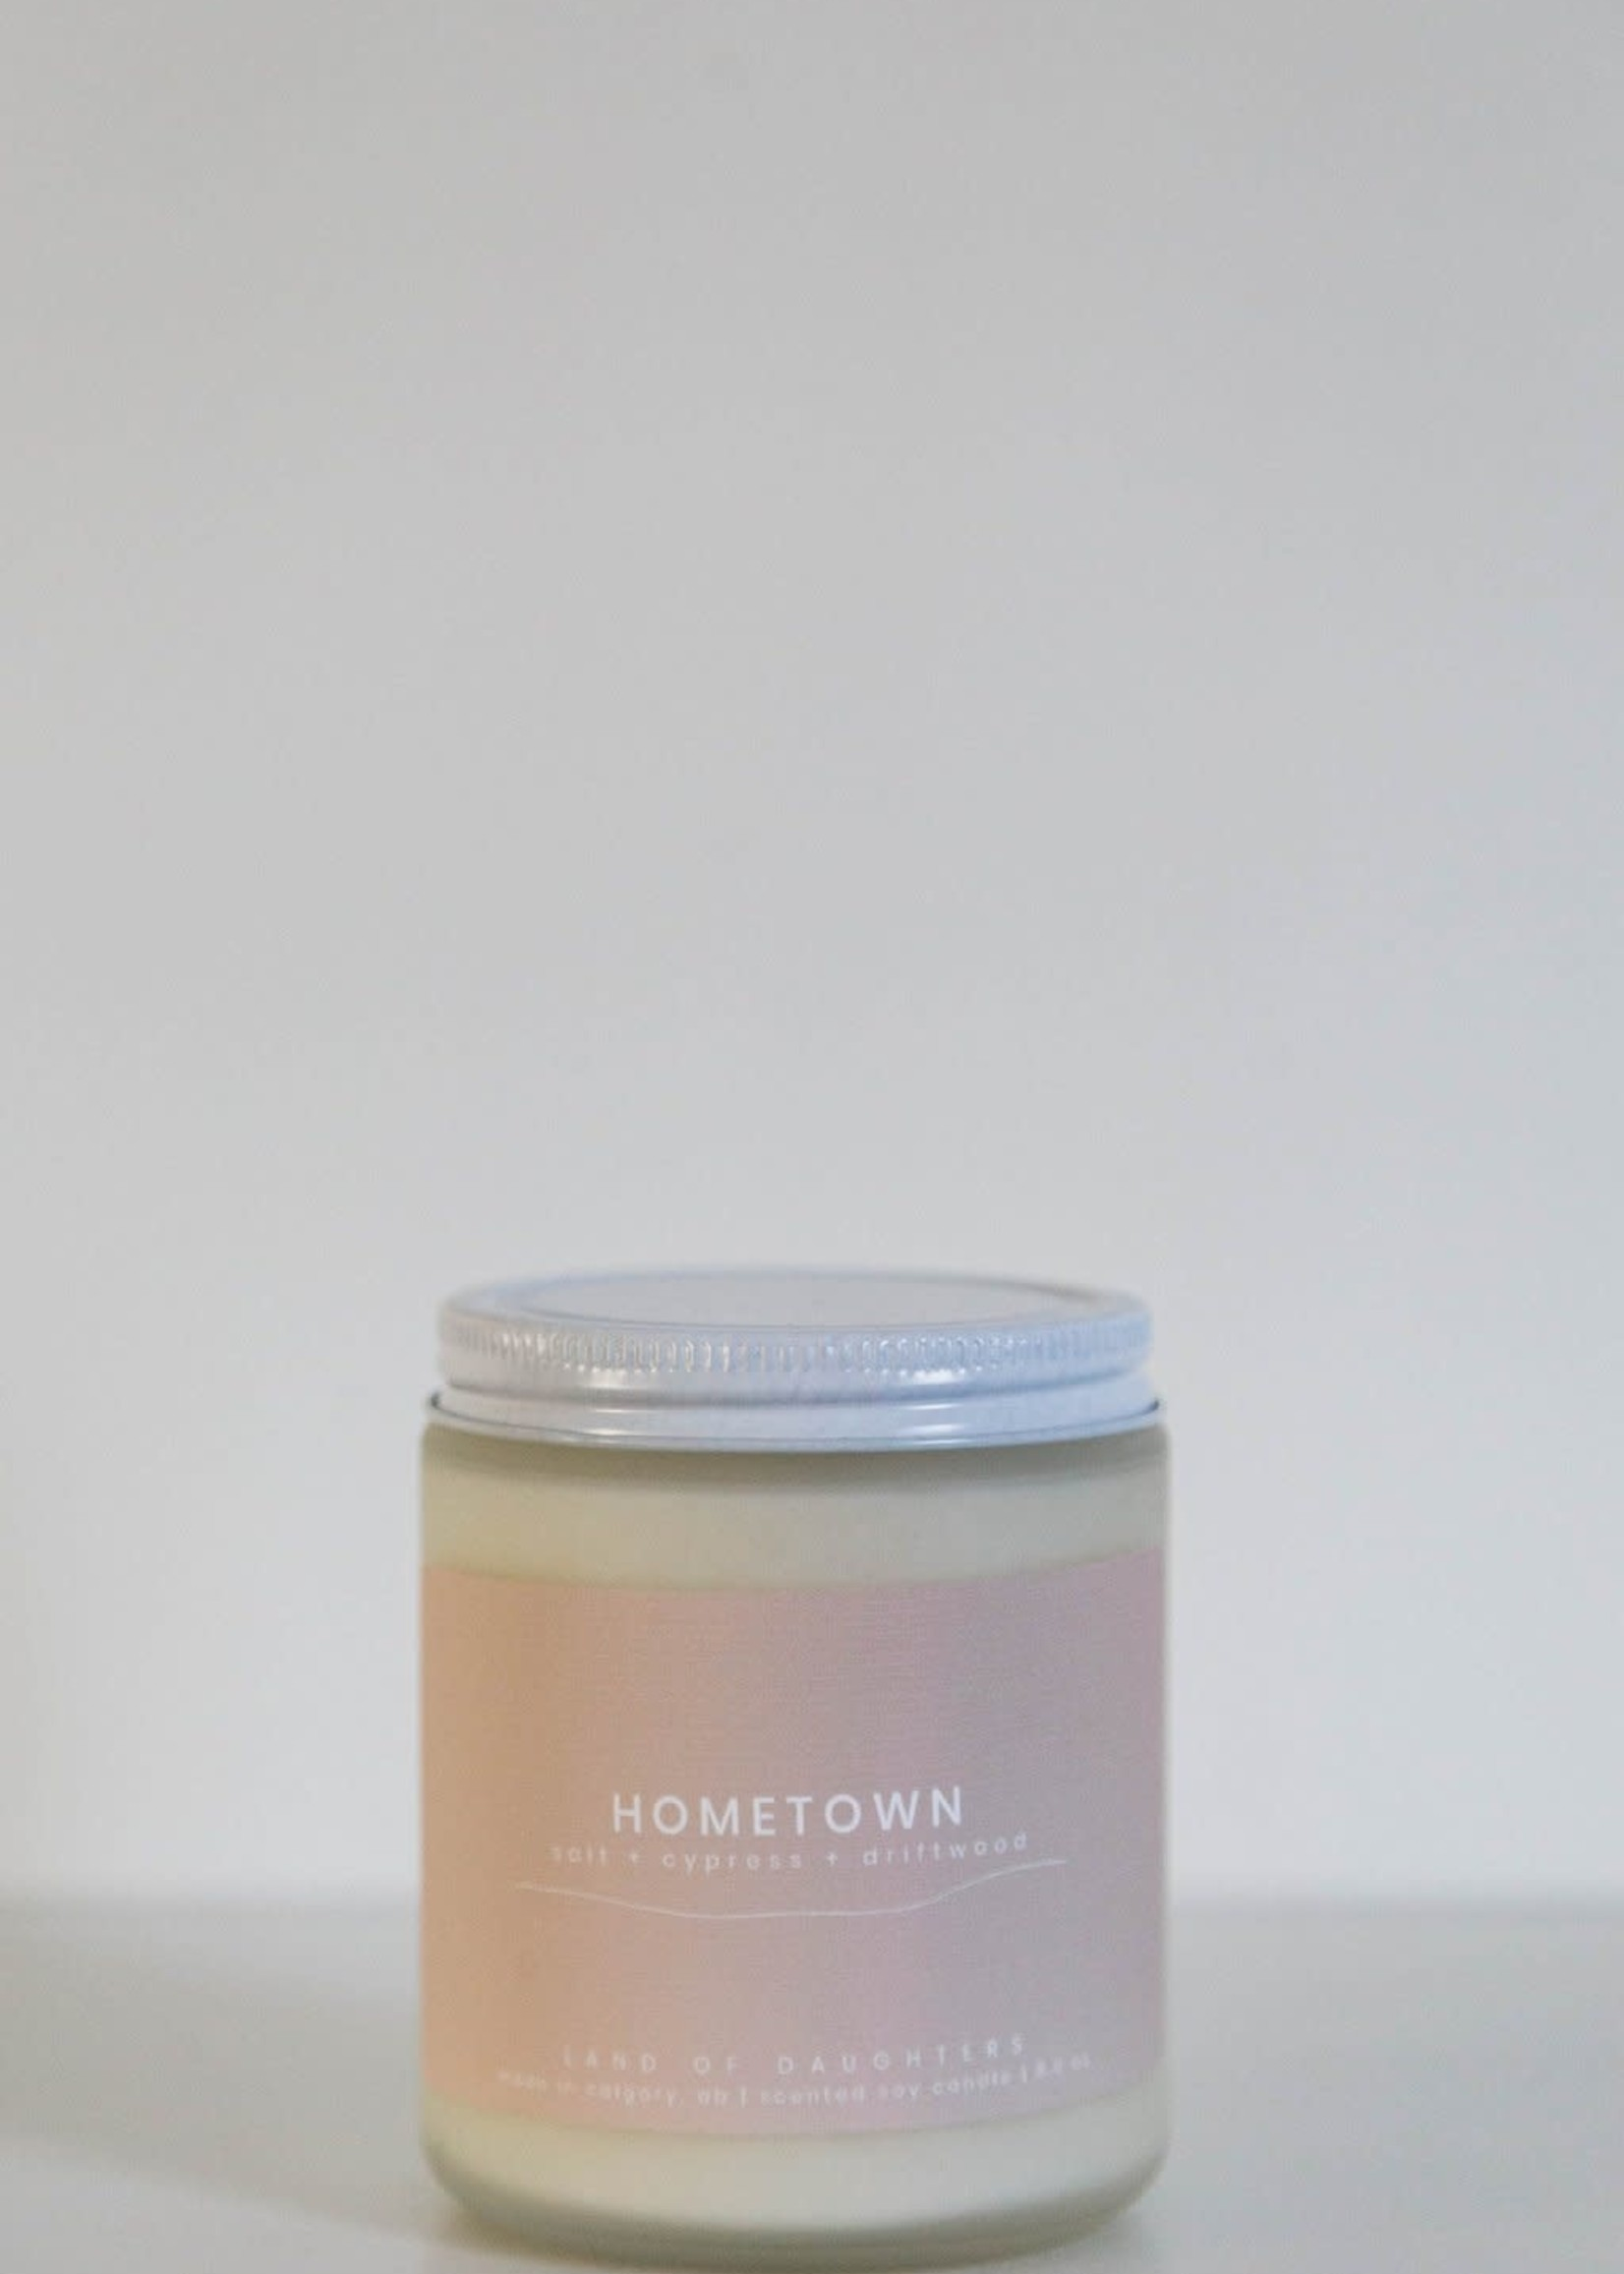 LAND of DAUGHTERS Hometown CANDLE